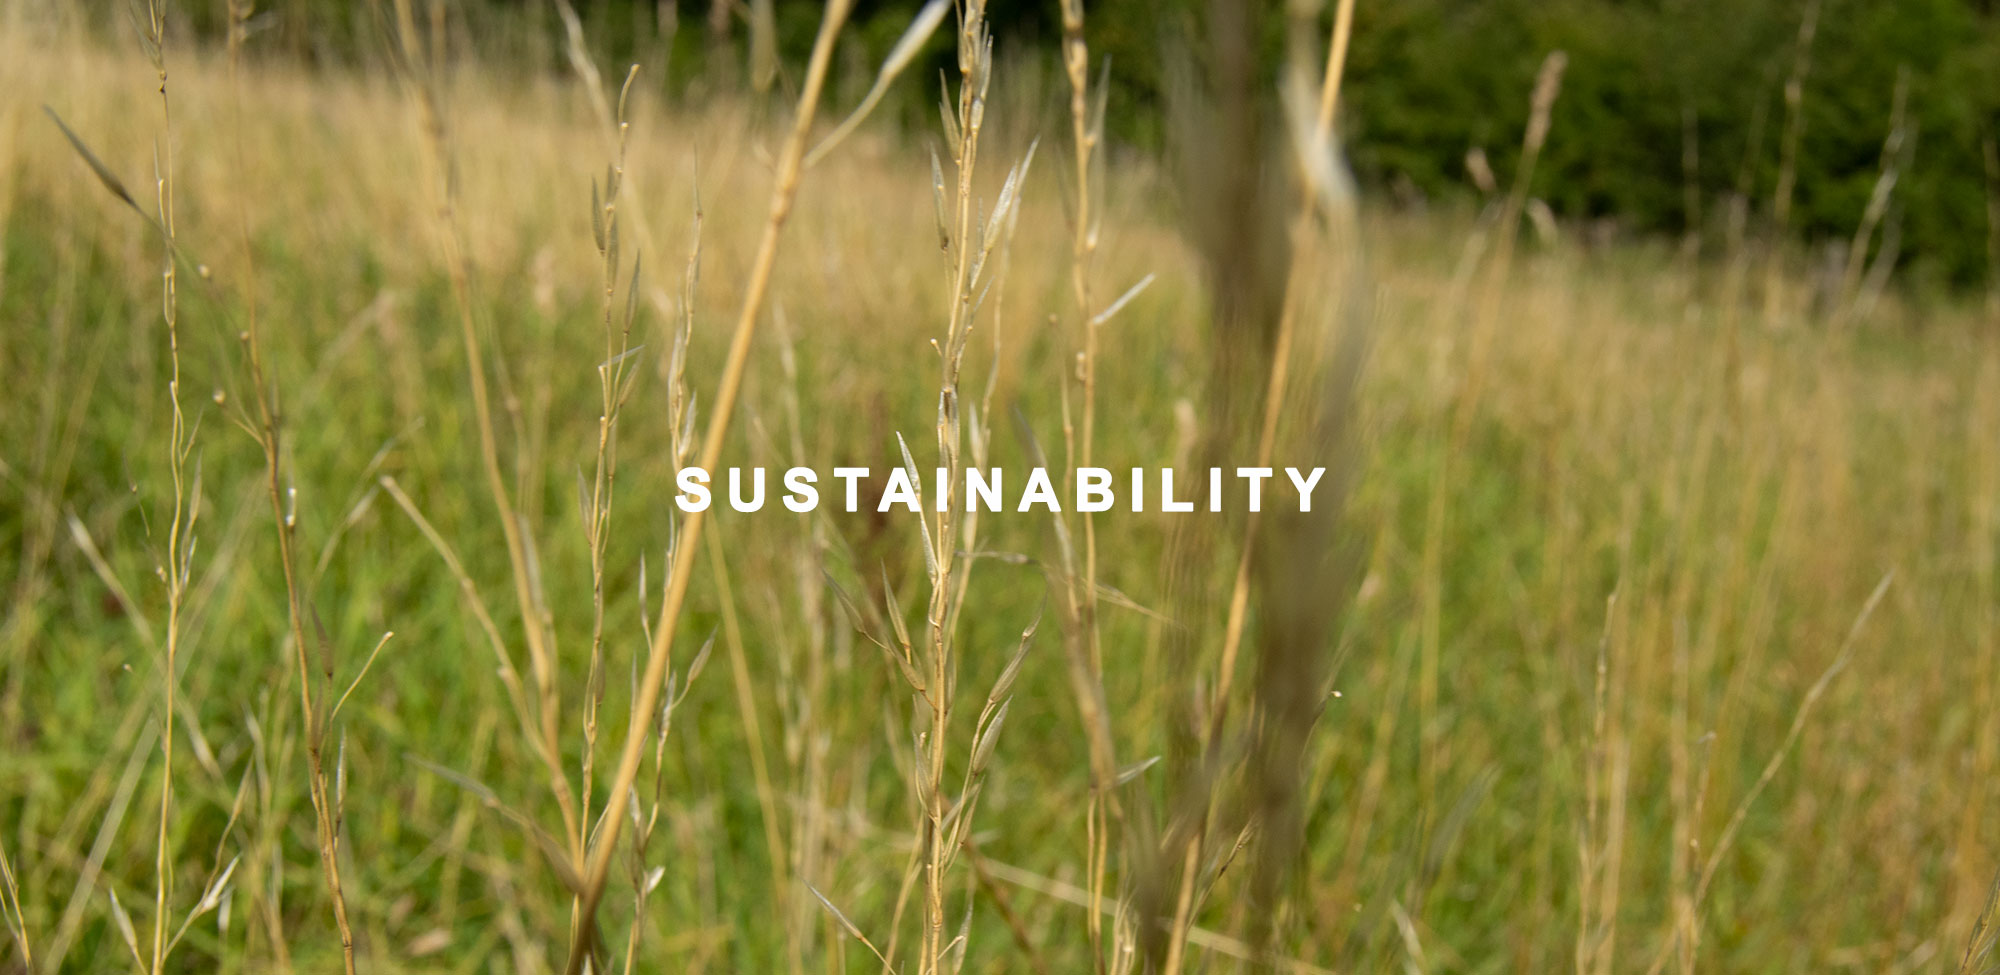 sustainability-2019-header-gushlow-and-cole